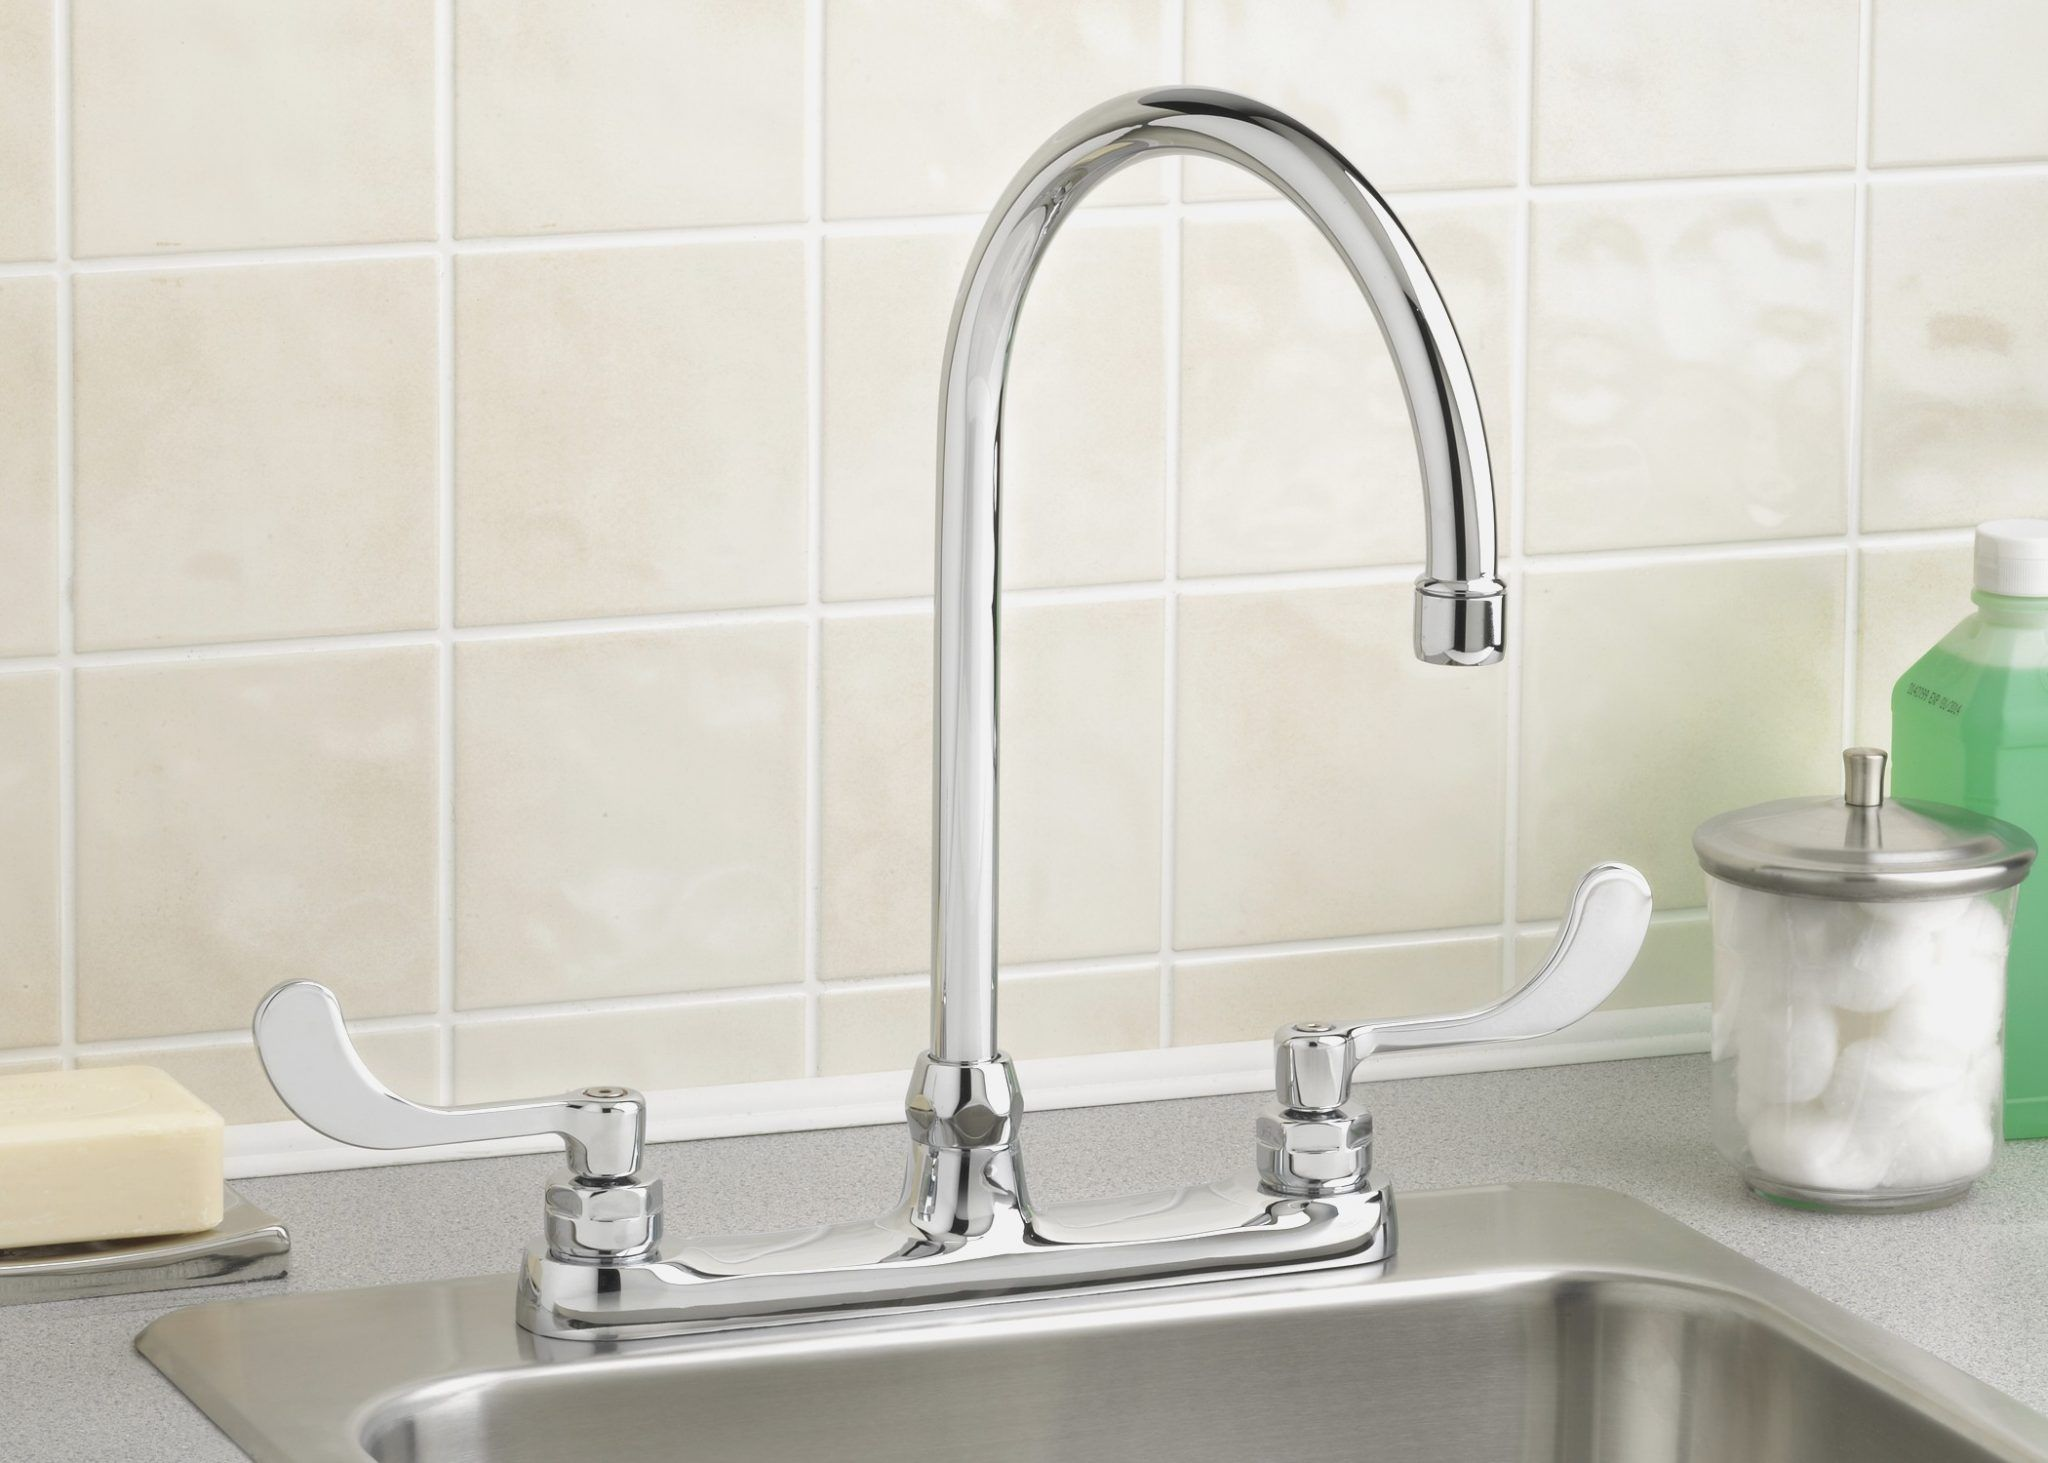 Home Depot Kitchen Sink Faucets - home depot canada kitchen sink ...